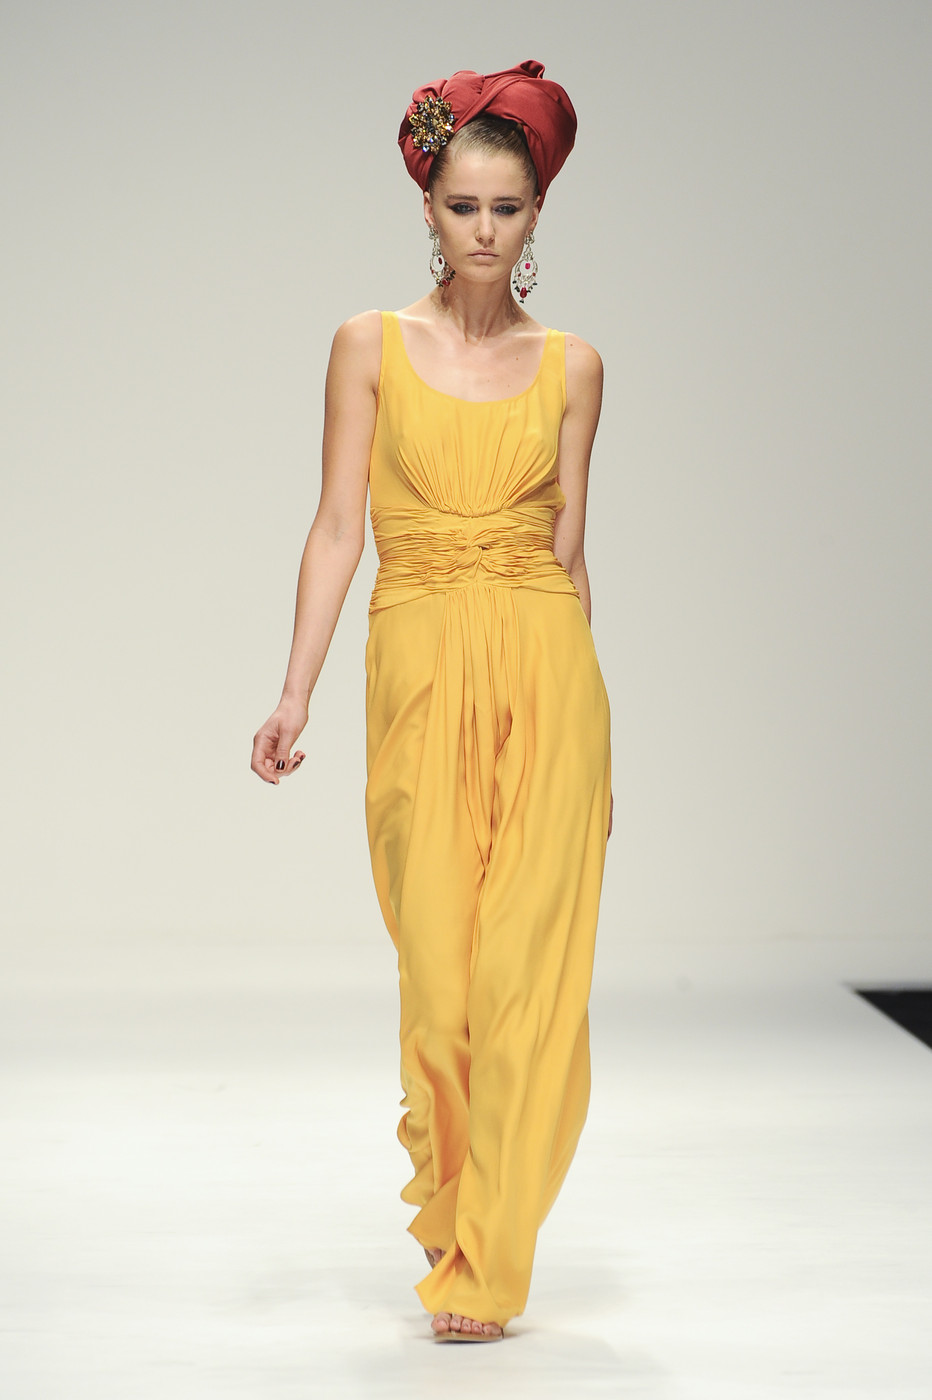 via fashioned by love | Issa Spring/Summer 2011